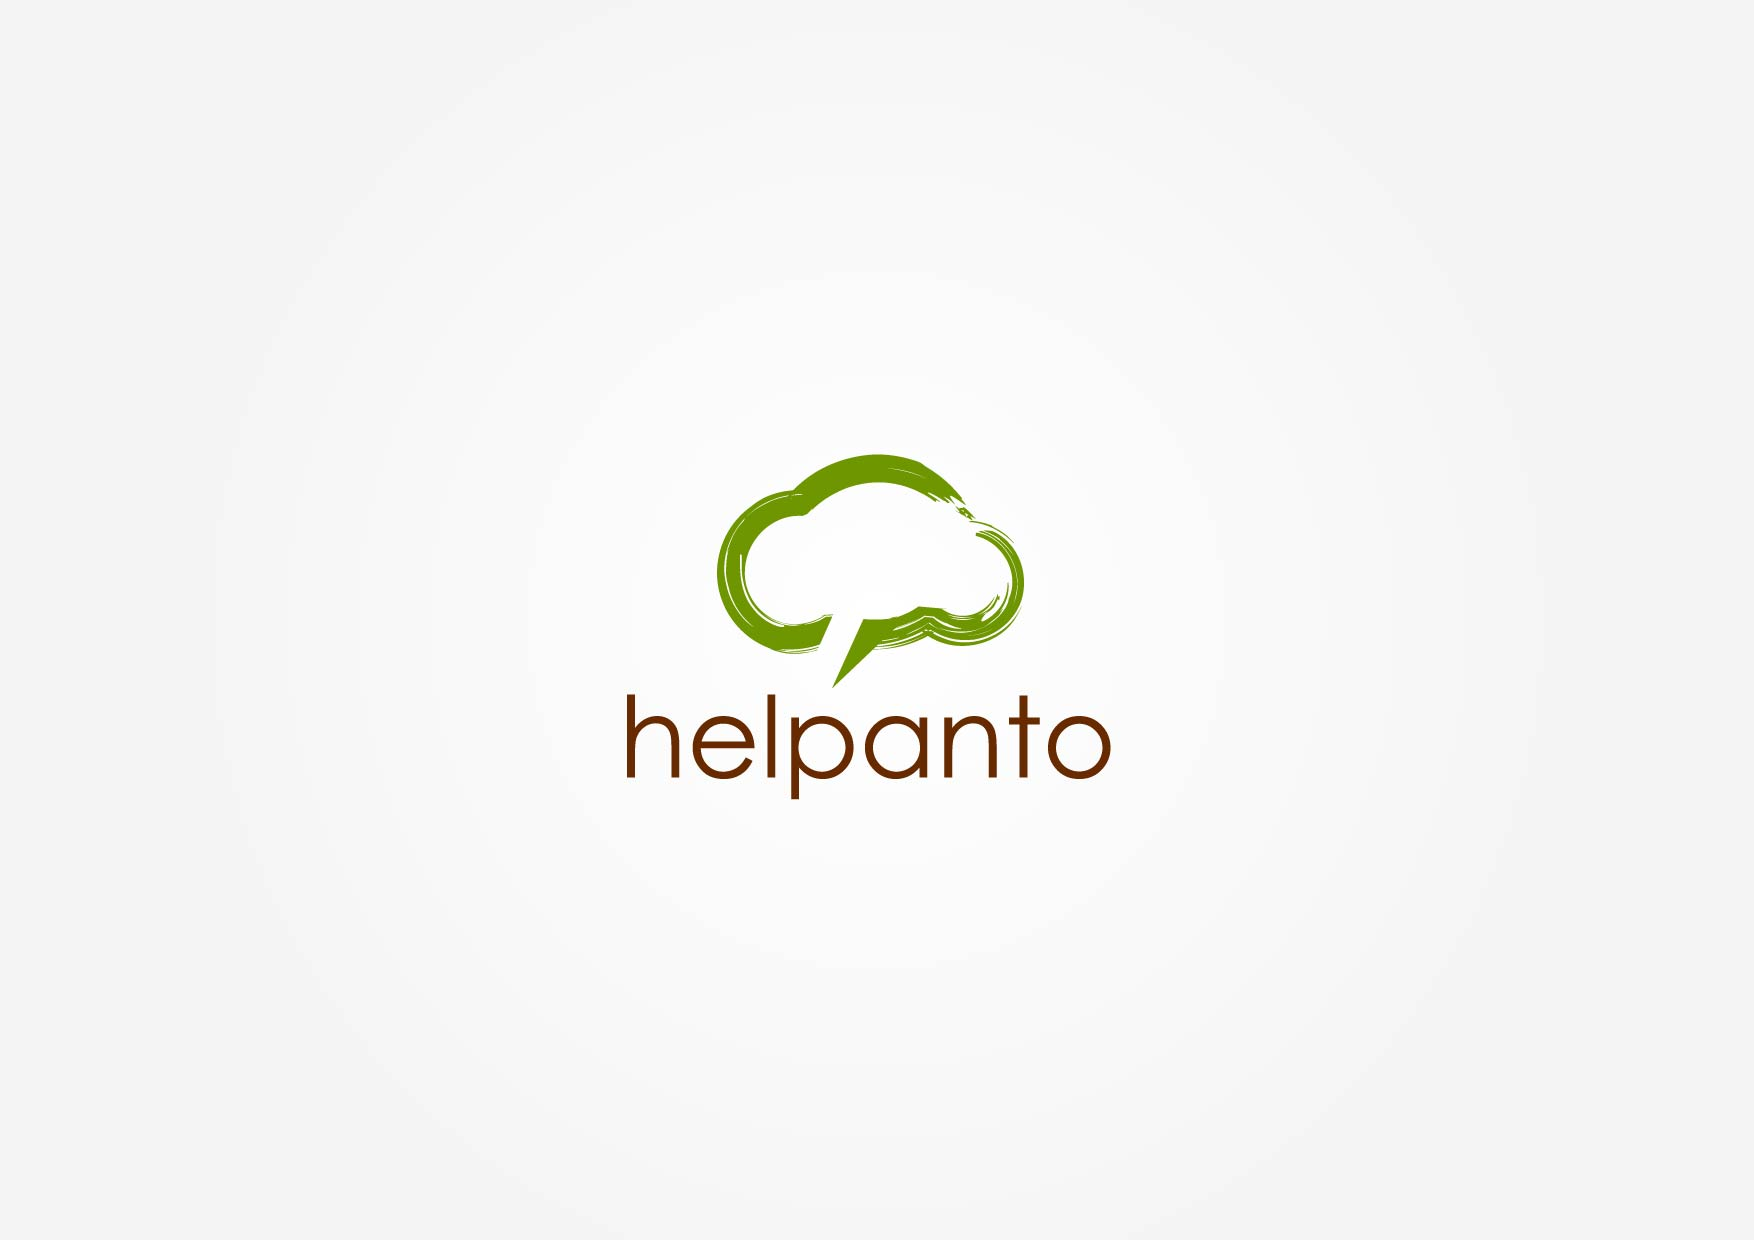 Logo Design by Osi Indra - Entry No. 92 in the Logo Design Contest Artistic Logo Design for helpanto.